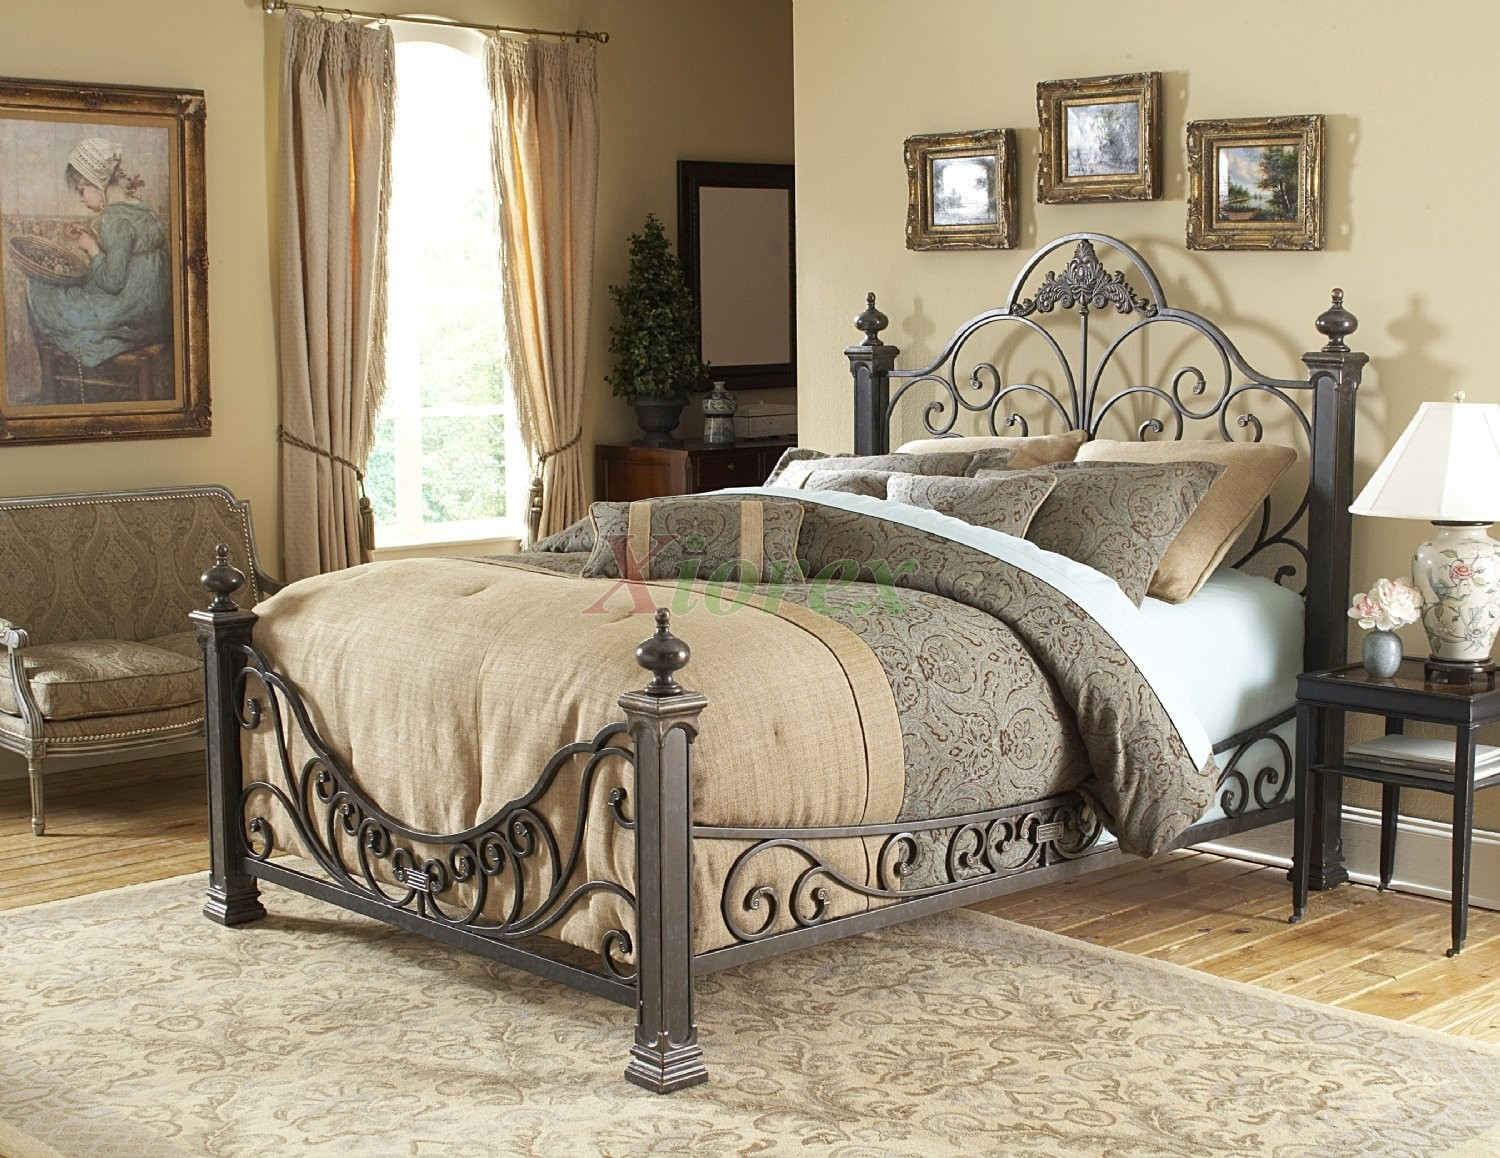 Fashion Bedroom Furniture Interesting Baroque Bed  Poster Bed In Gilded Slatefashion Bed Group  Xiorex Inspiration Design